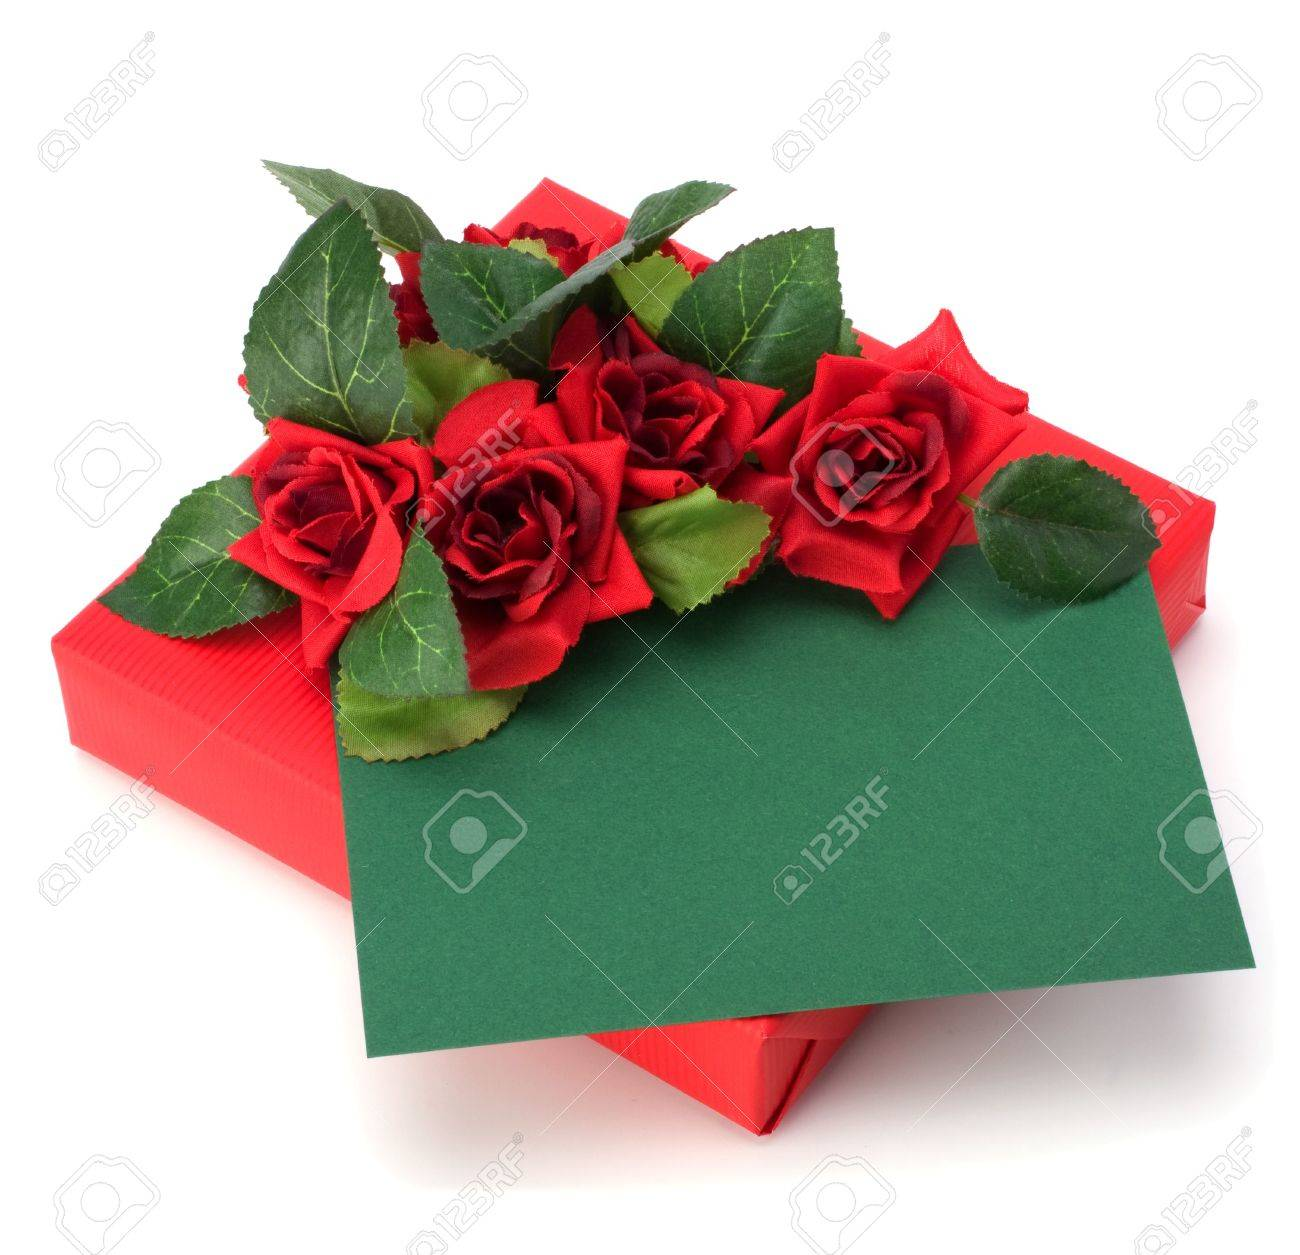 Gift with floral decor. Flowers are artificial. Stock Photo - 6258747